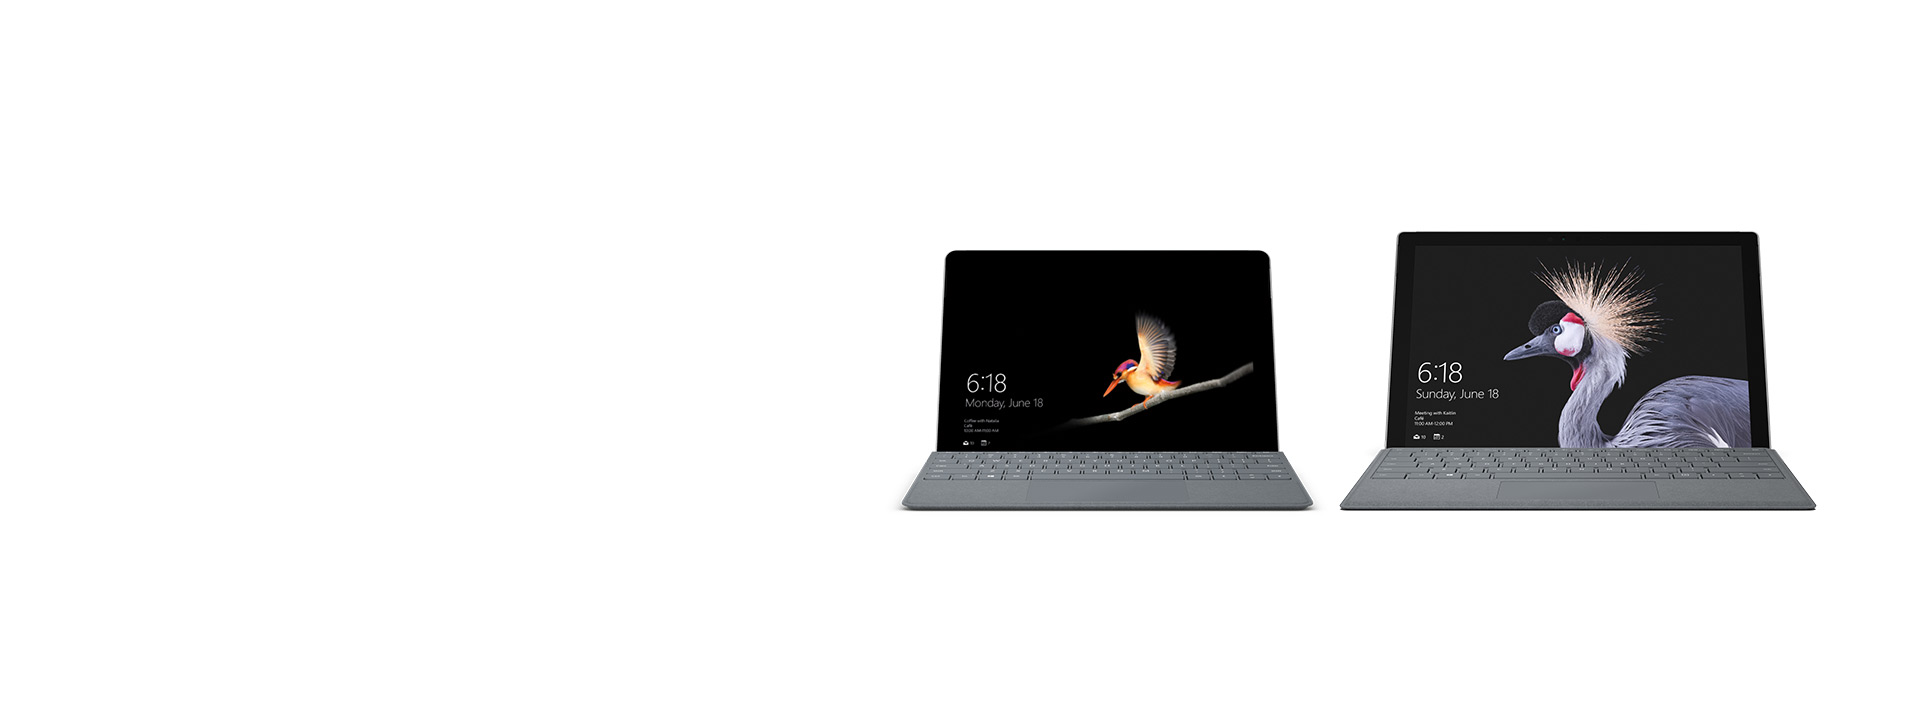 Familia de Surface: Surface Go y Surface Pro